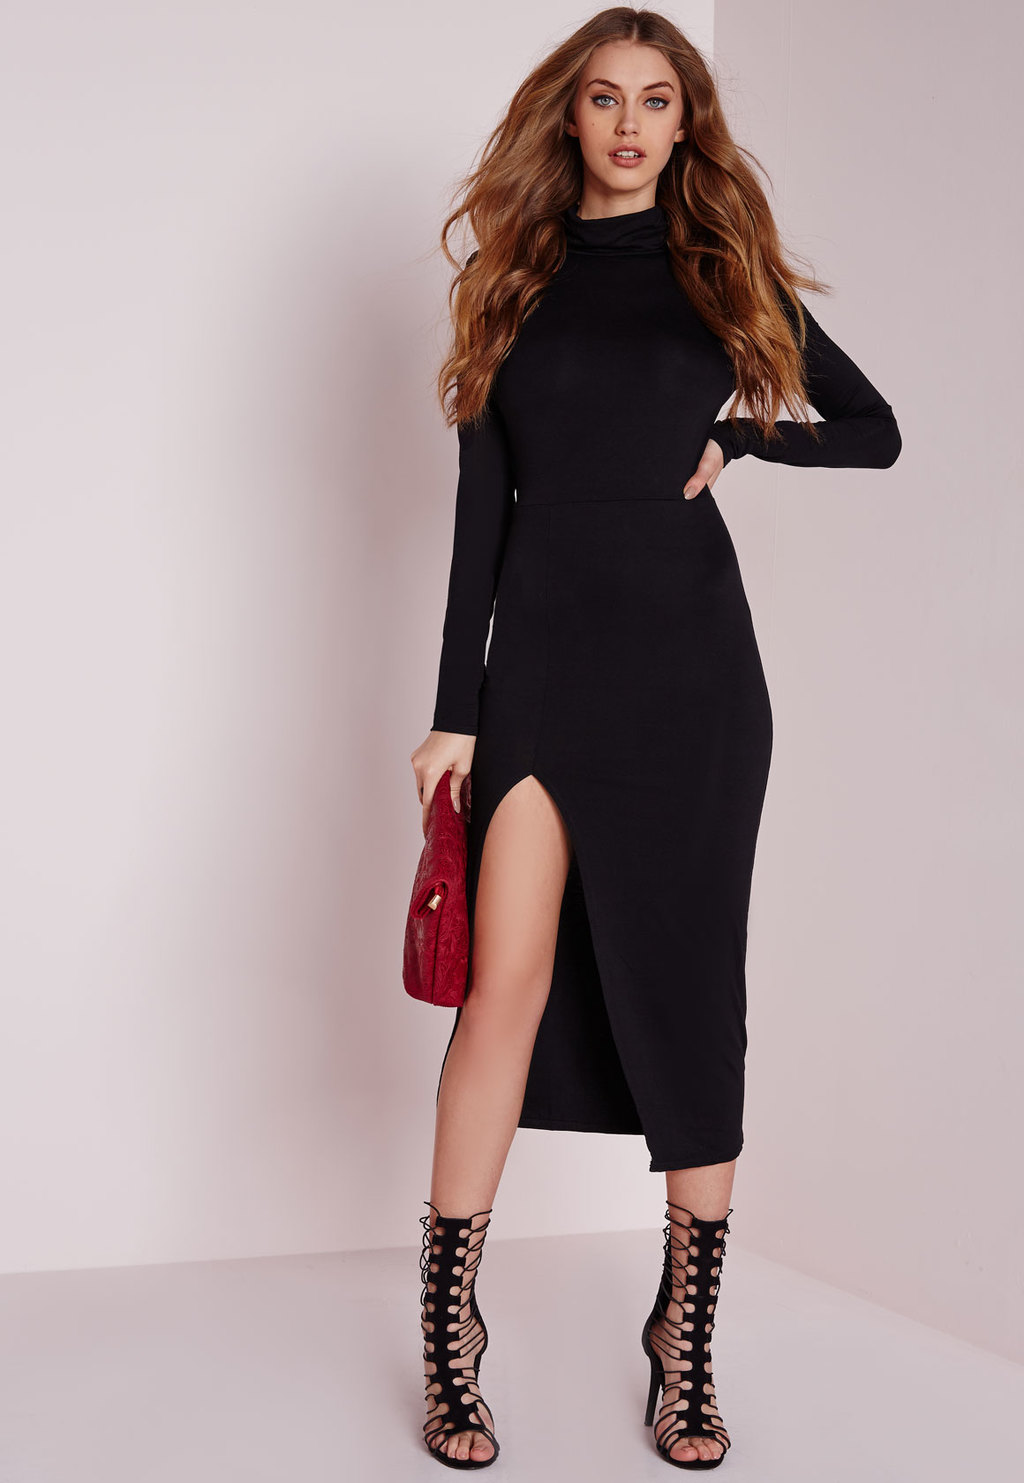 High Neck Extreme Side Split Midi Dress Black, Black - length: calf length; fit: tight; pattern: plain; neckline: high neck; style: bodycon; predominant colour: black; occasions: evening; fibres: polyester/polyamide - stretch; sleeve length: long sleeve; sleeve style: standard; texture group: jersey - clingy; pattern type: fabric; season: a/w 2015; wardrobe: event